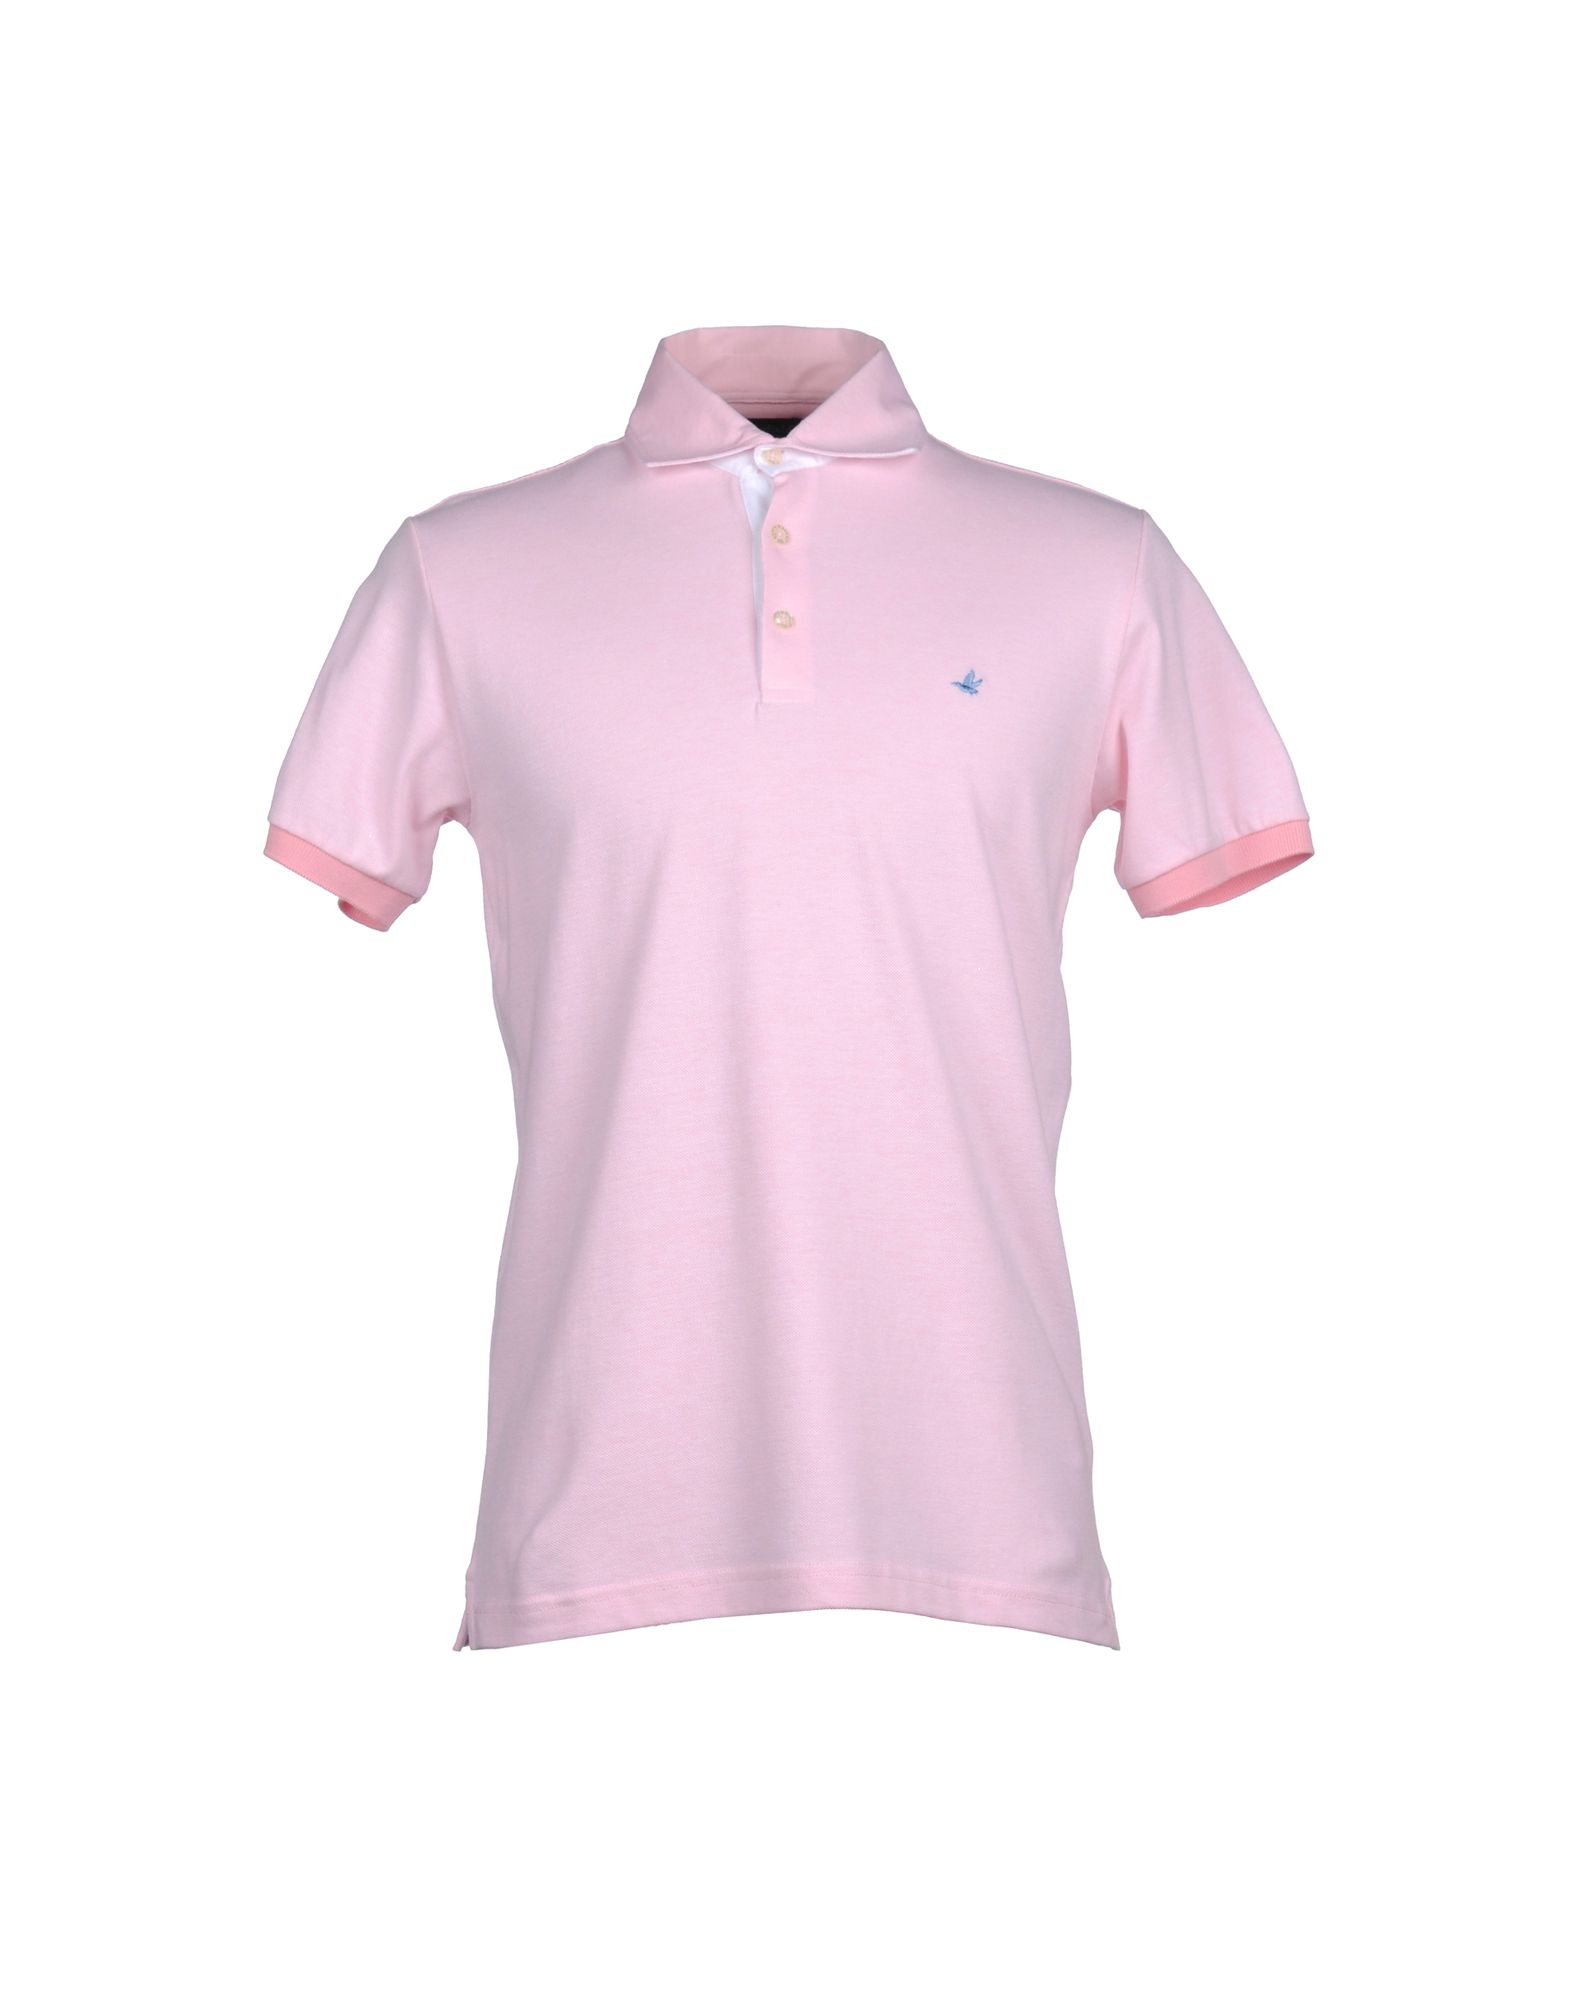 Brooksfield Polo Shirt In Pink For Men Save 31 Lyst